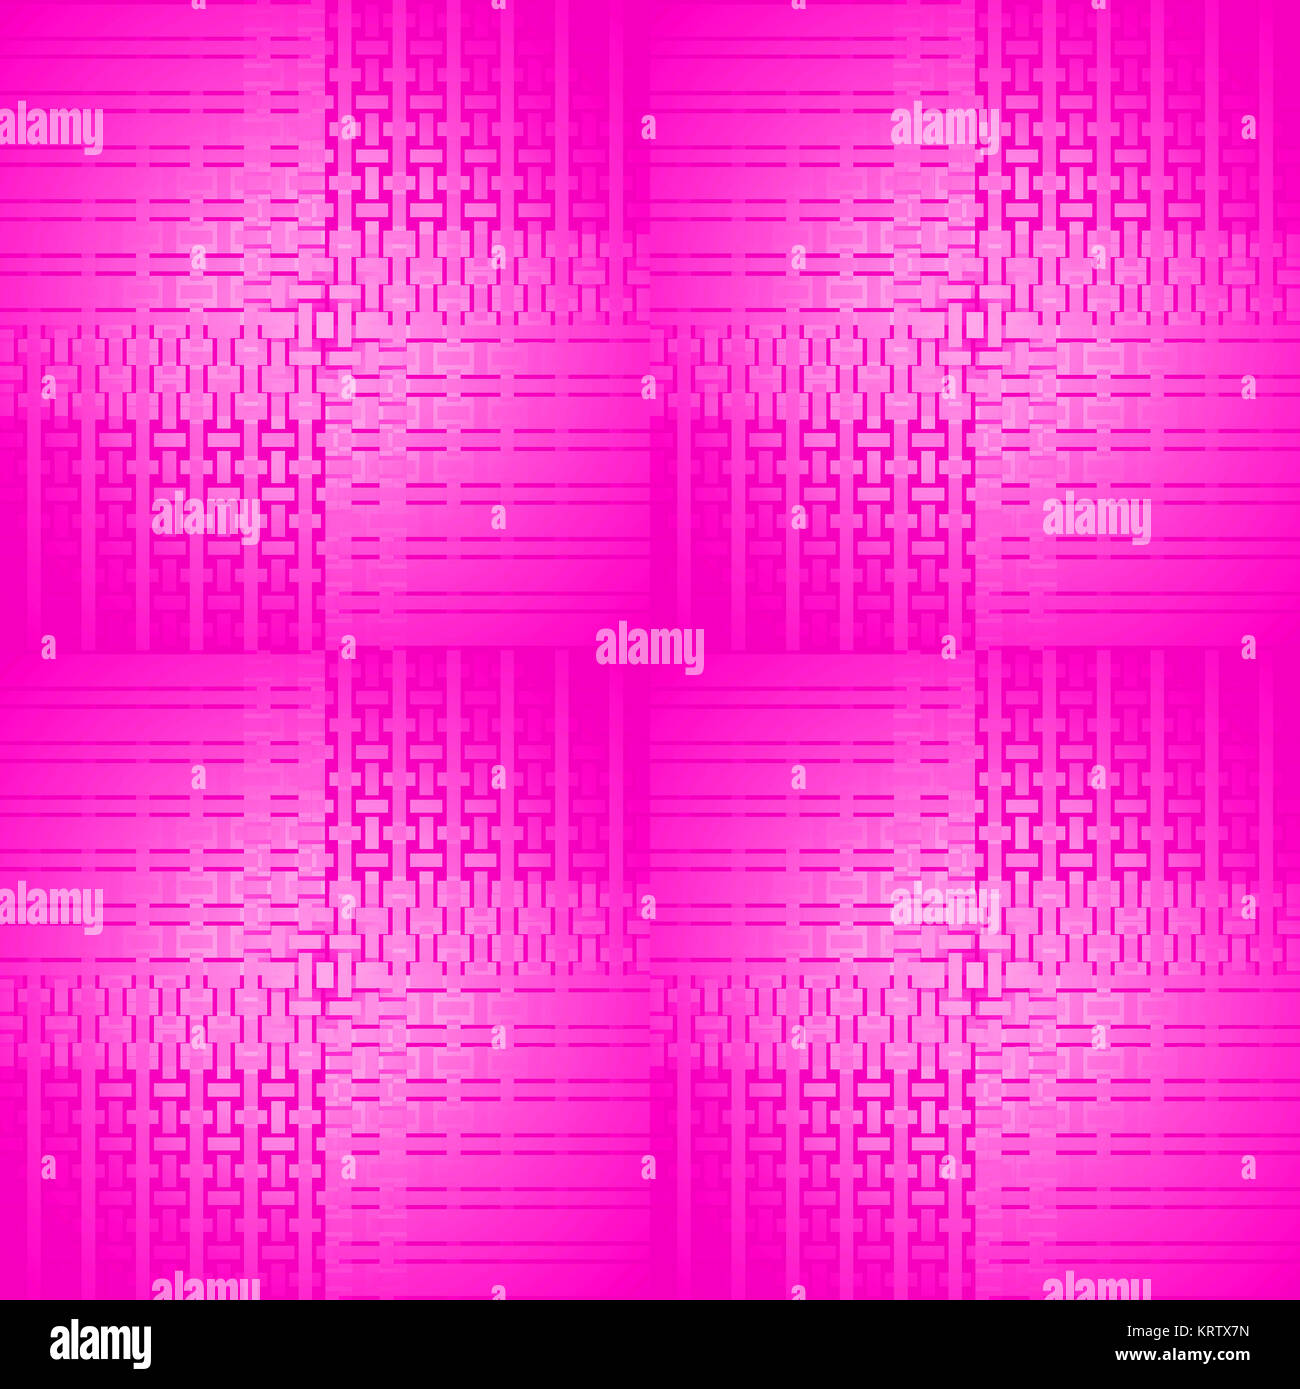 Abstract geometric seamless modern background. Regular rectangles and stripes pattern in magenta and violet shades. - Stock Image